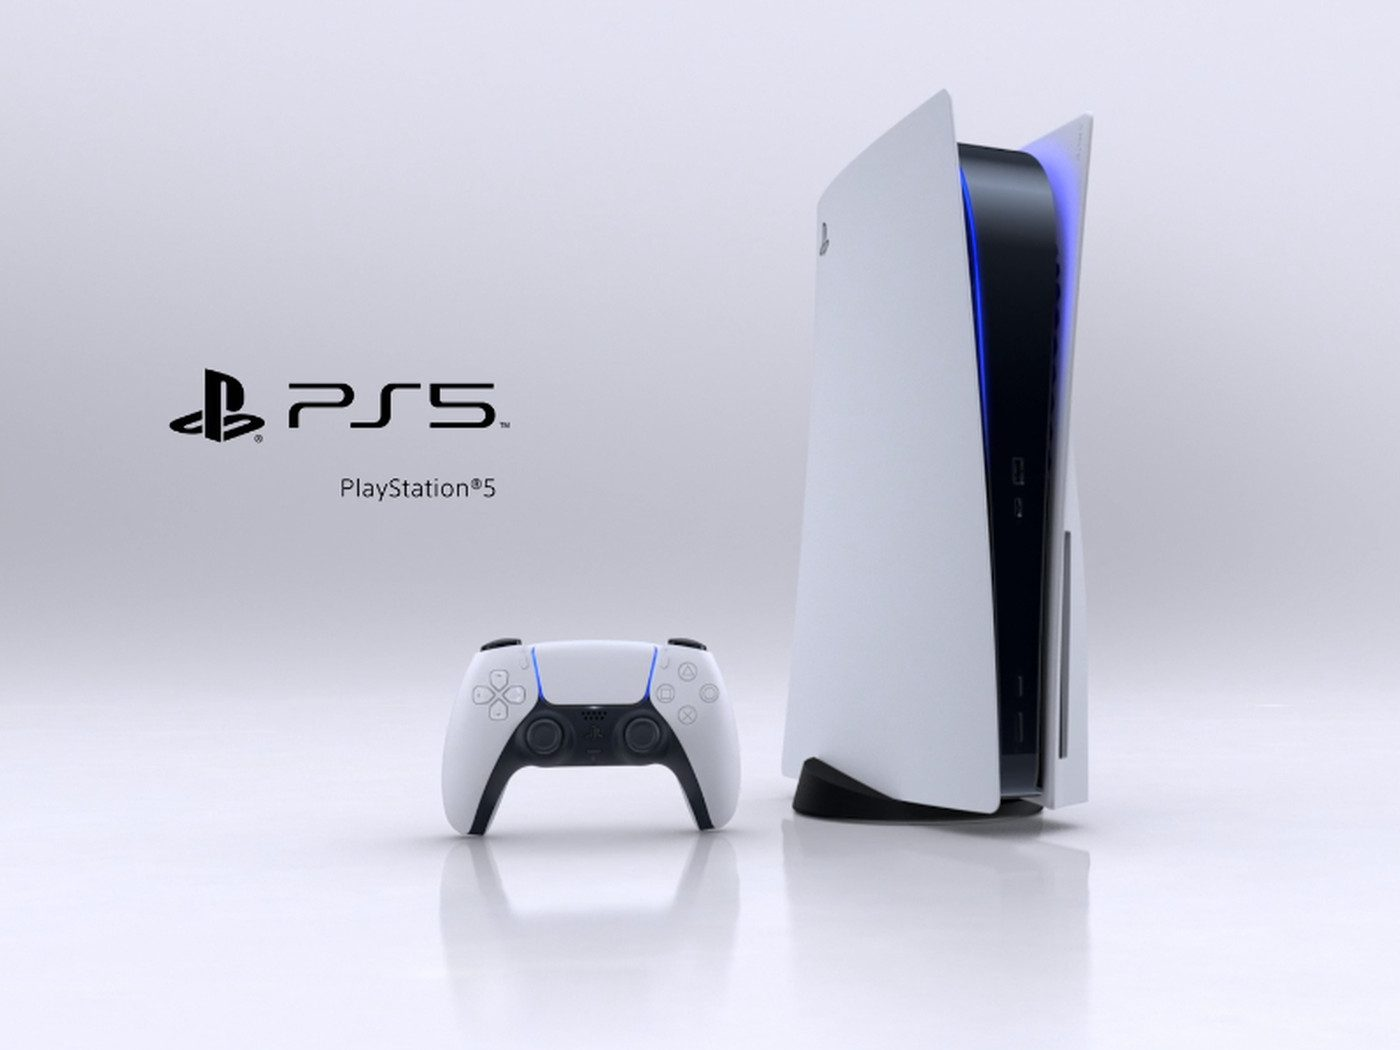 March 2021 NPD Report: PlayStation 5 Is The Fastest-Selling Console In U.S. History In Unit & Dollar Sales